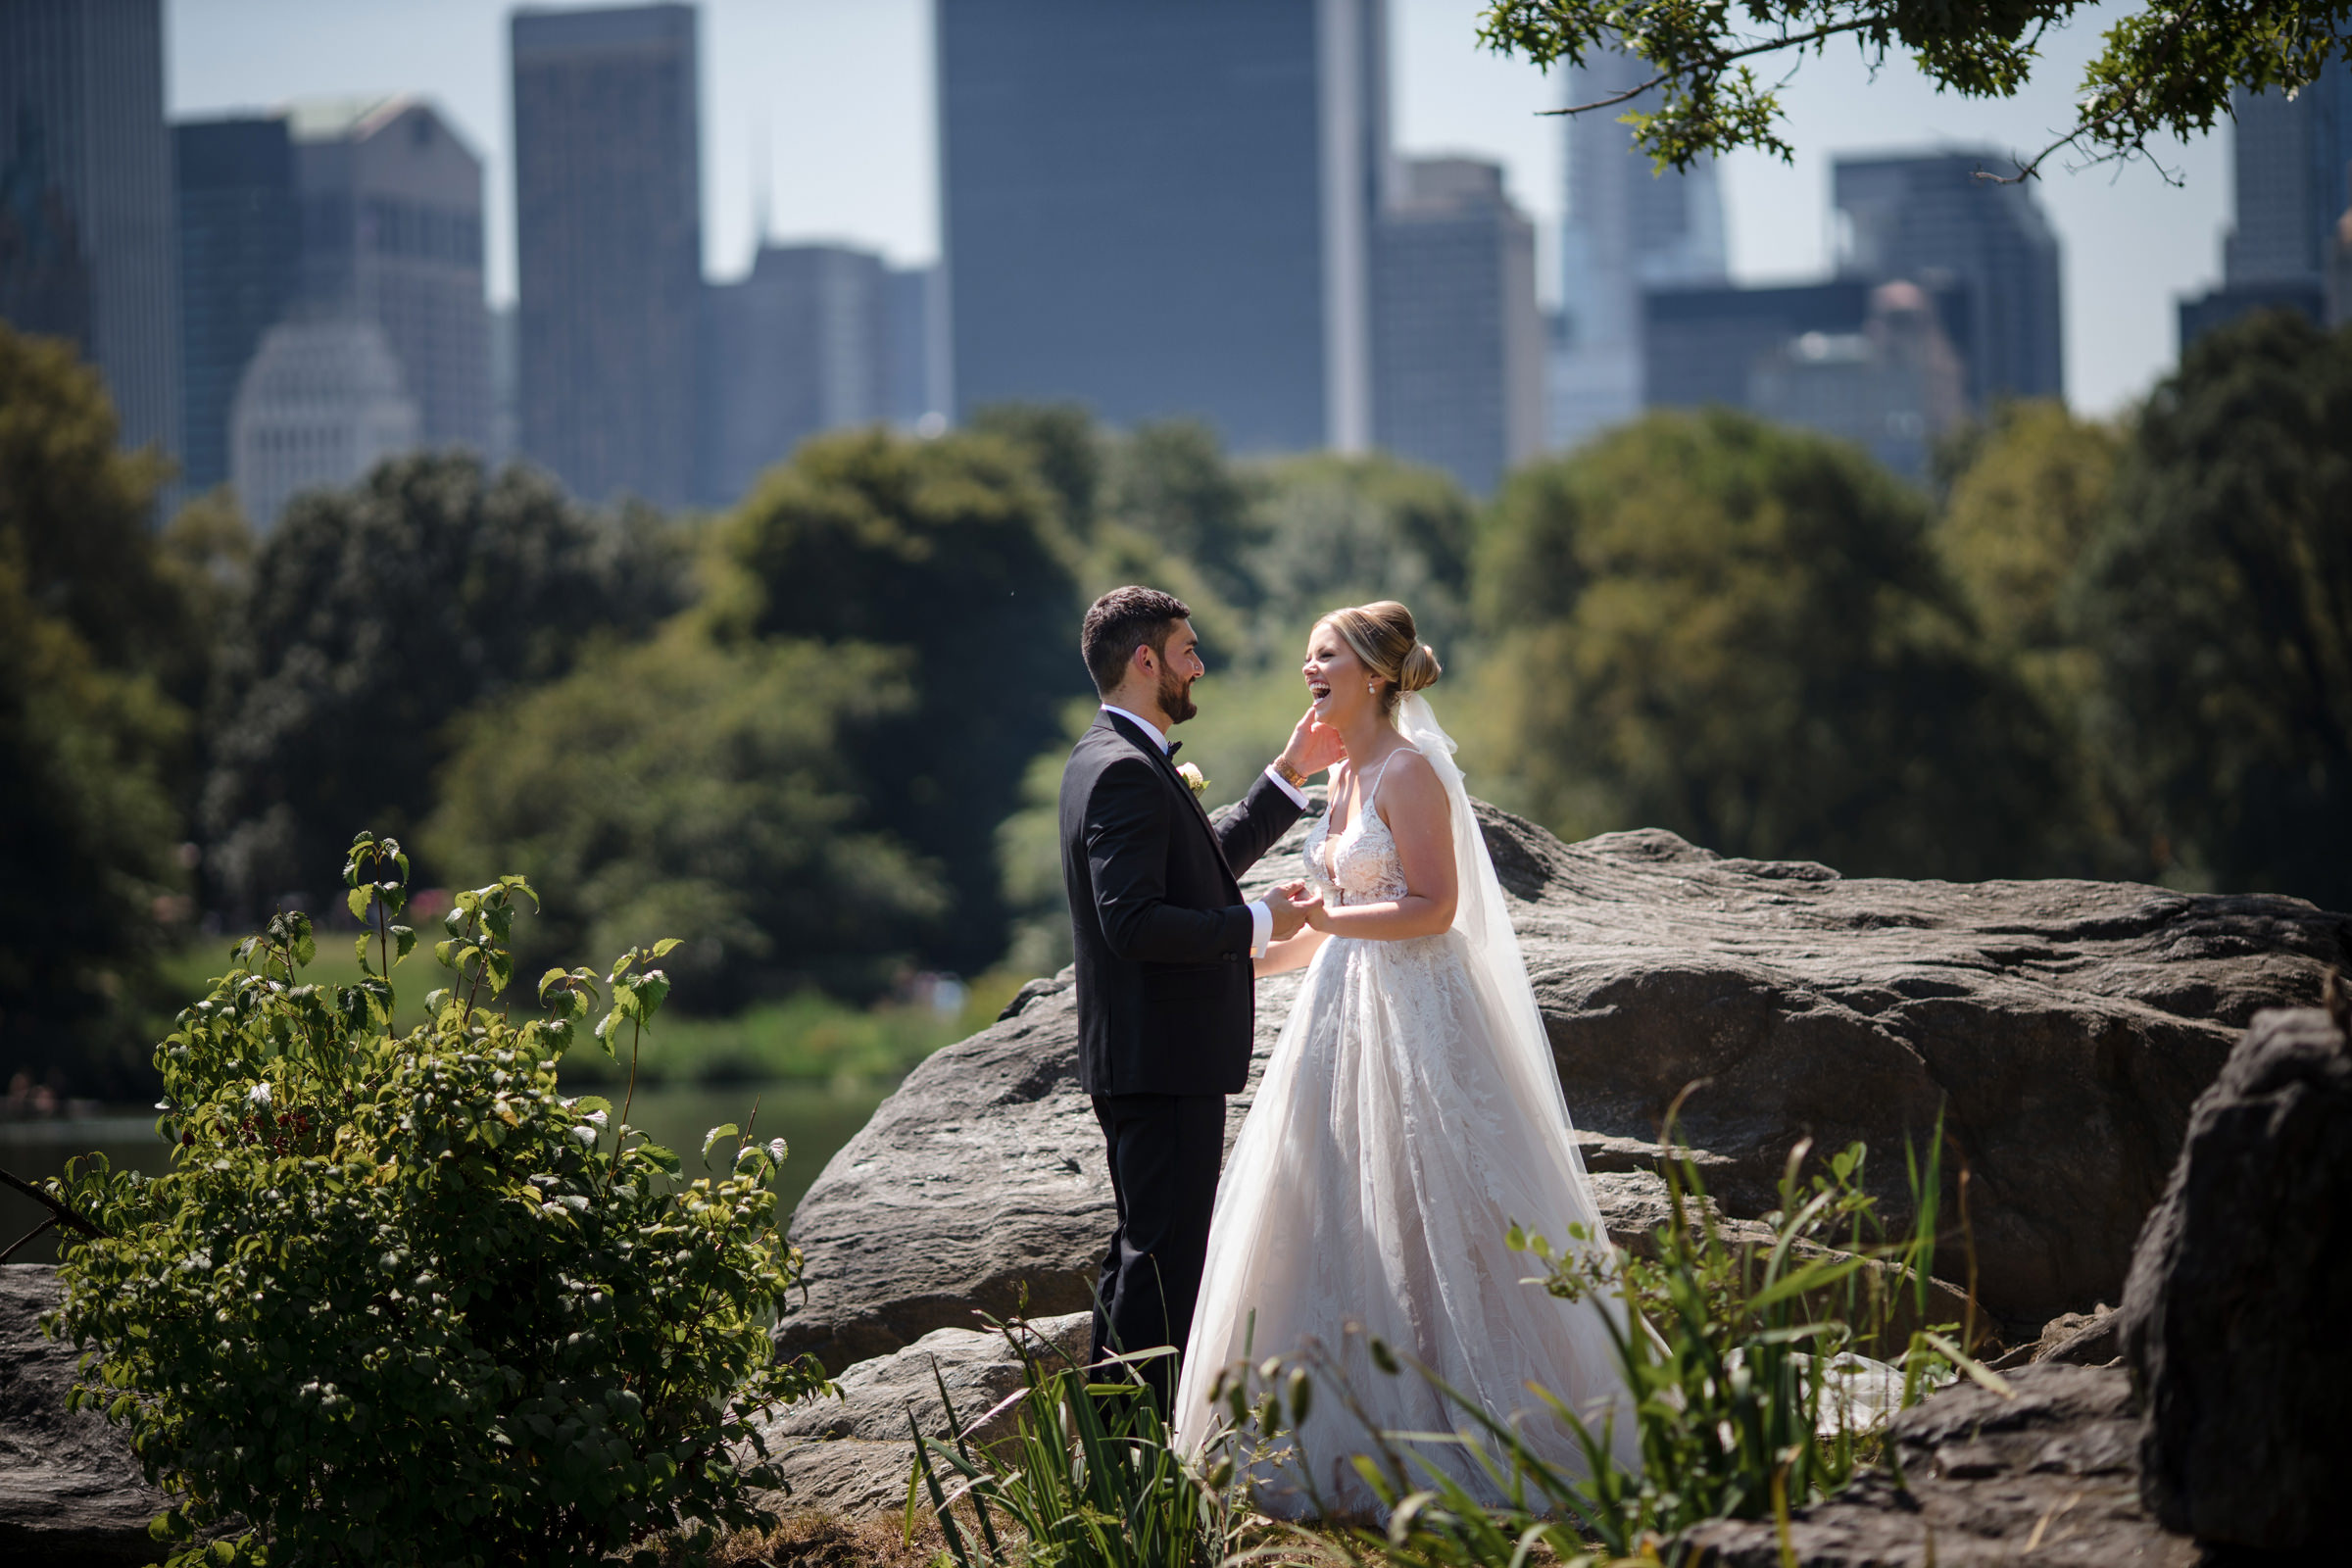 Joyful bride and groom in Central Park against NYC cityscape, photo by Susan Stripling